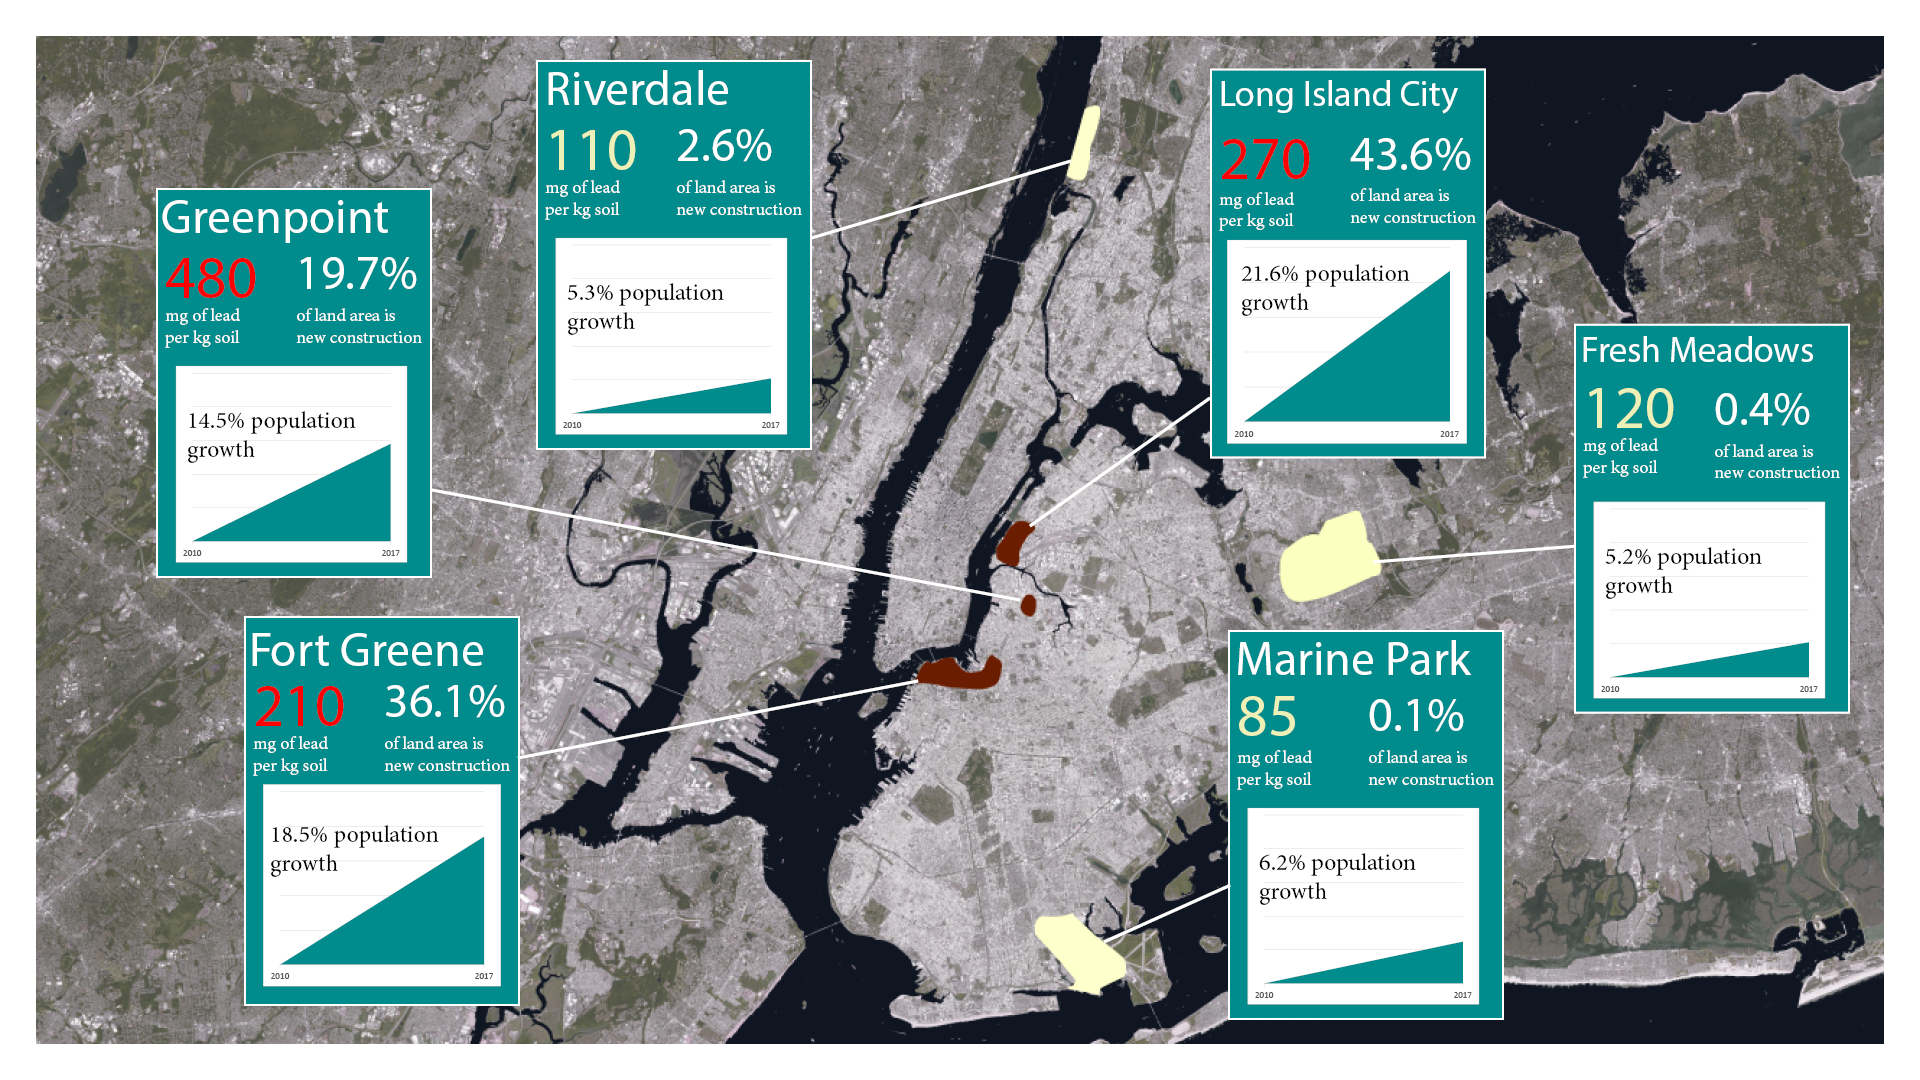 A map showing approximate locations of the six geographical areas examined by the CUNY study, along with the median lead level observed, recent population growth, and the proportion of new construction